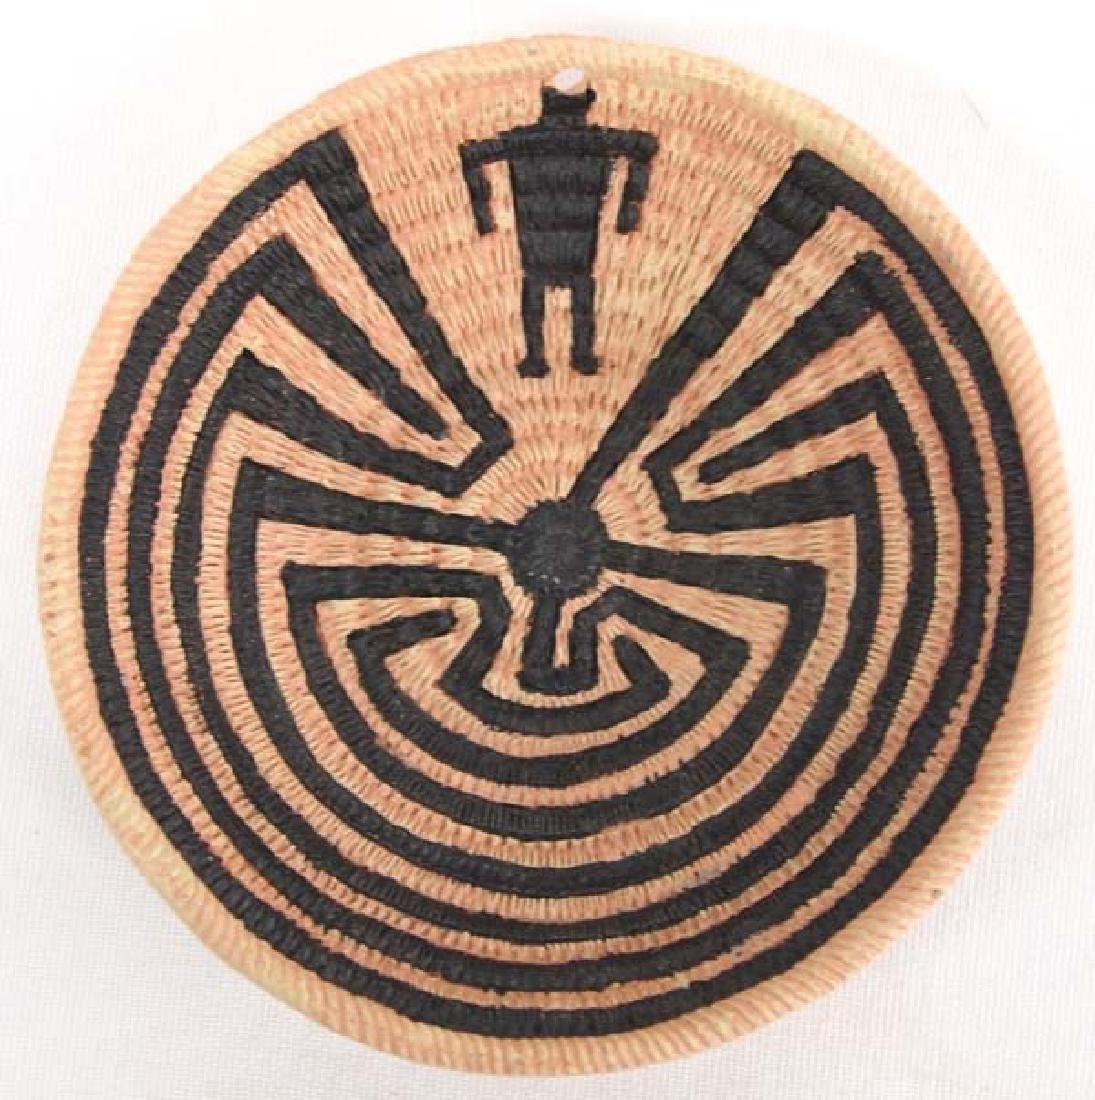 Yaqui  Man in Maze Pottery Basket by Whitefeather